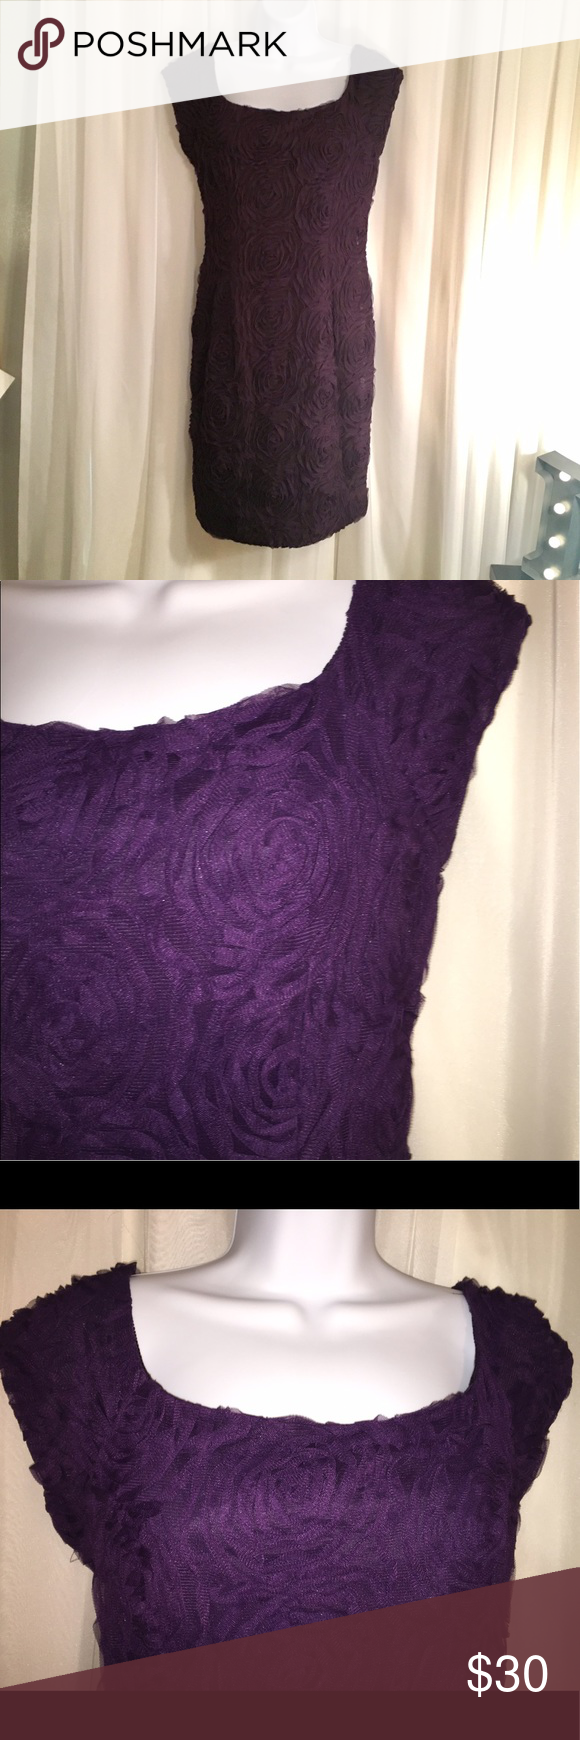 Katherine Howard Purple textured tulle dress. 6p. Katherine Howard size 6 petite dress. Beautiful rosette texture. Great for a formal event or wedding. Katherine Howard Dresses Wedding